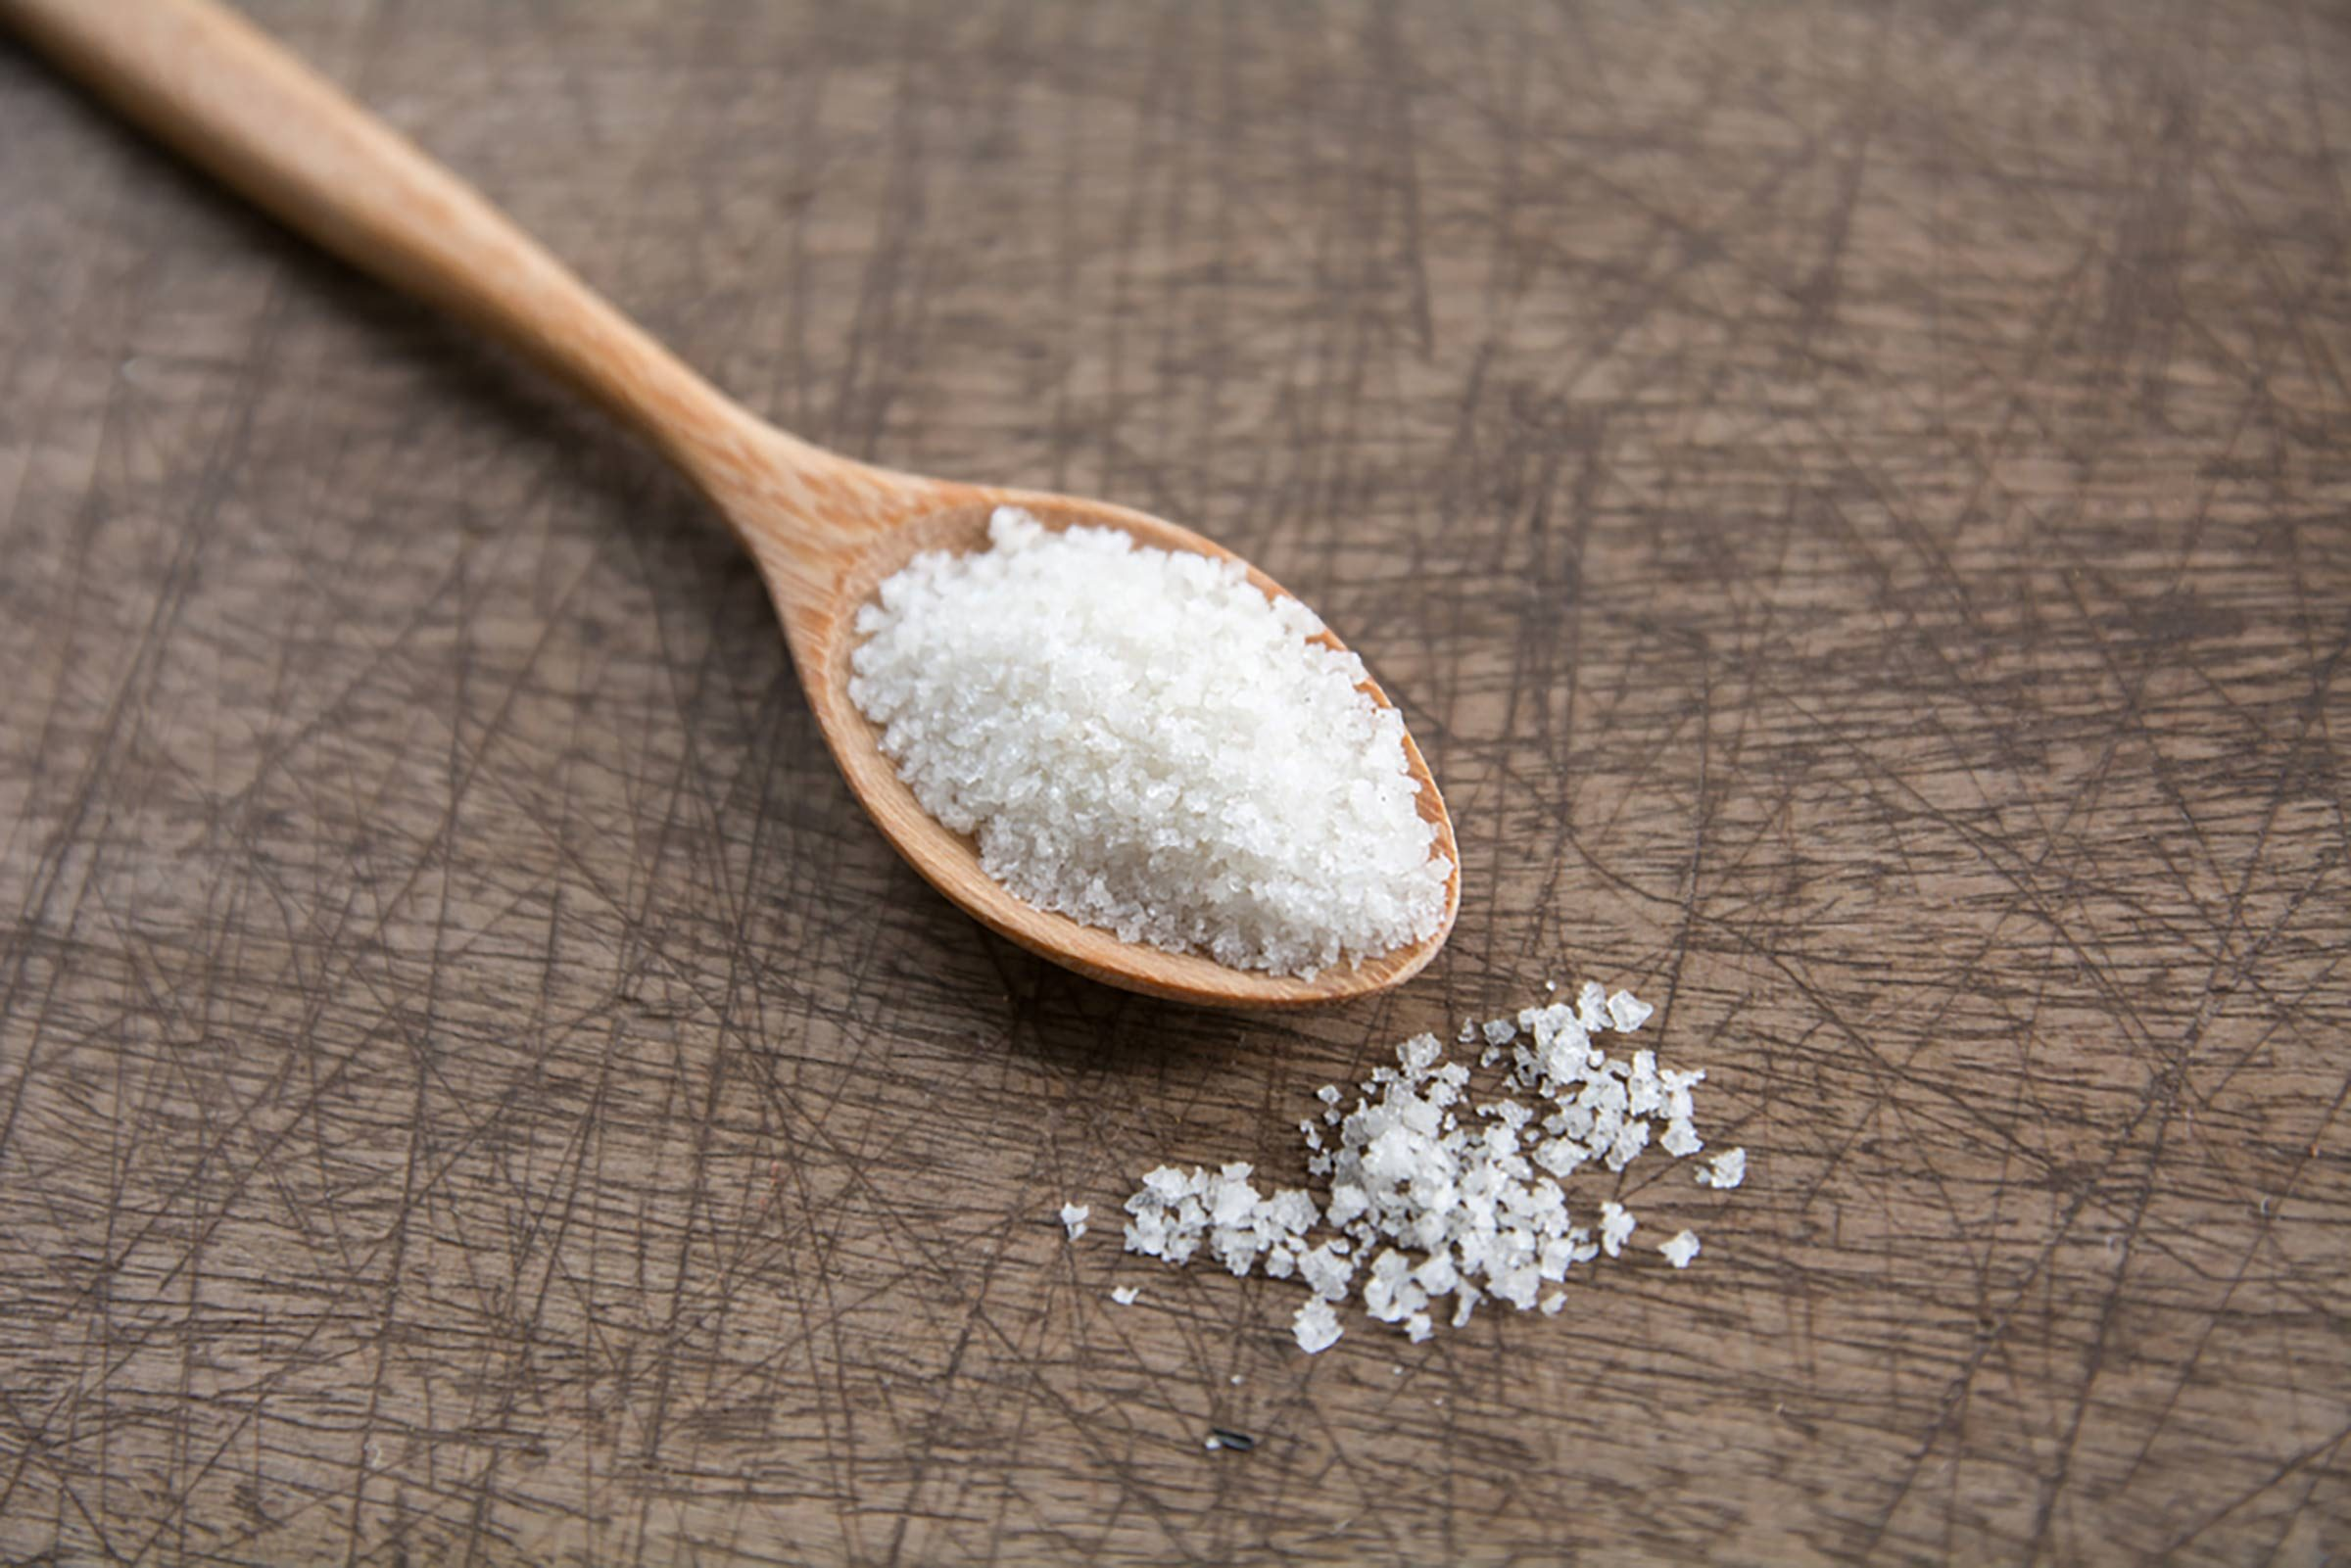 Iodized-Salt-Is-No-Longer-a-Required-Part-of-a-Healthy-Diet—Here's-Why-259893479-krutar